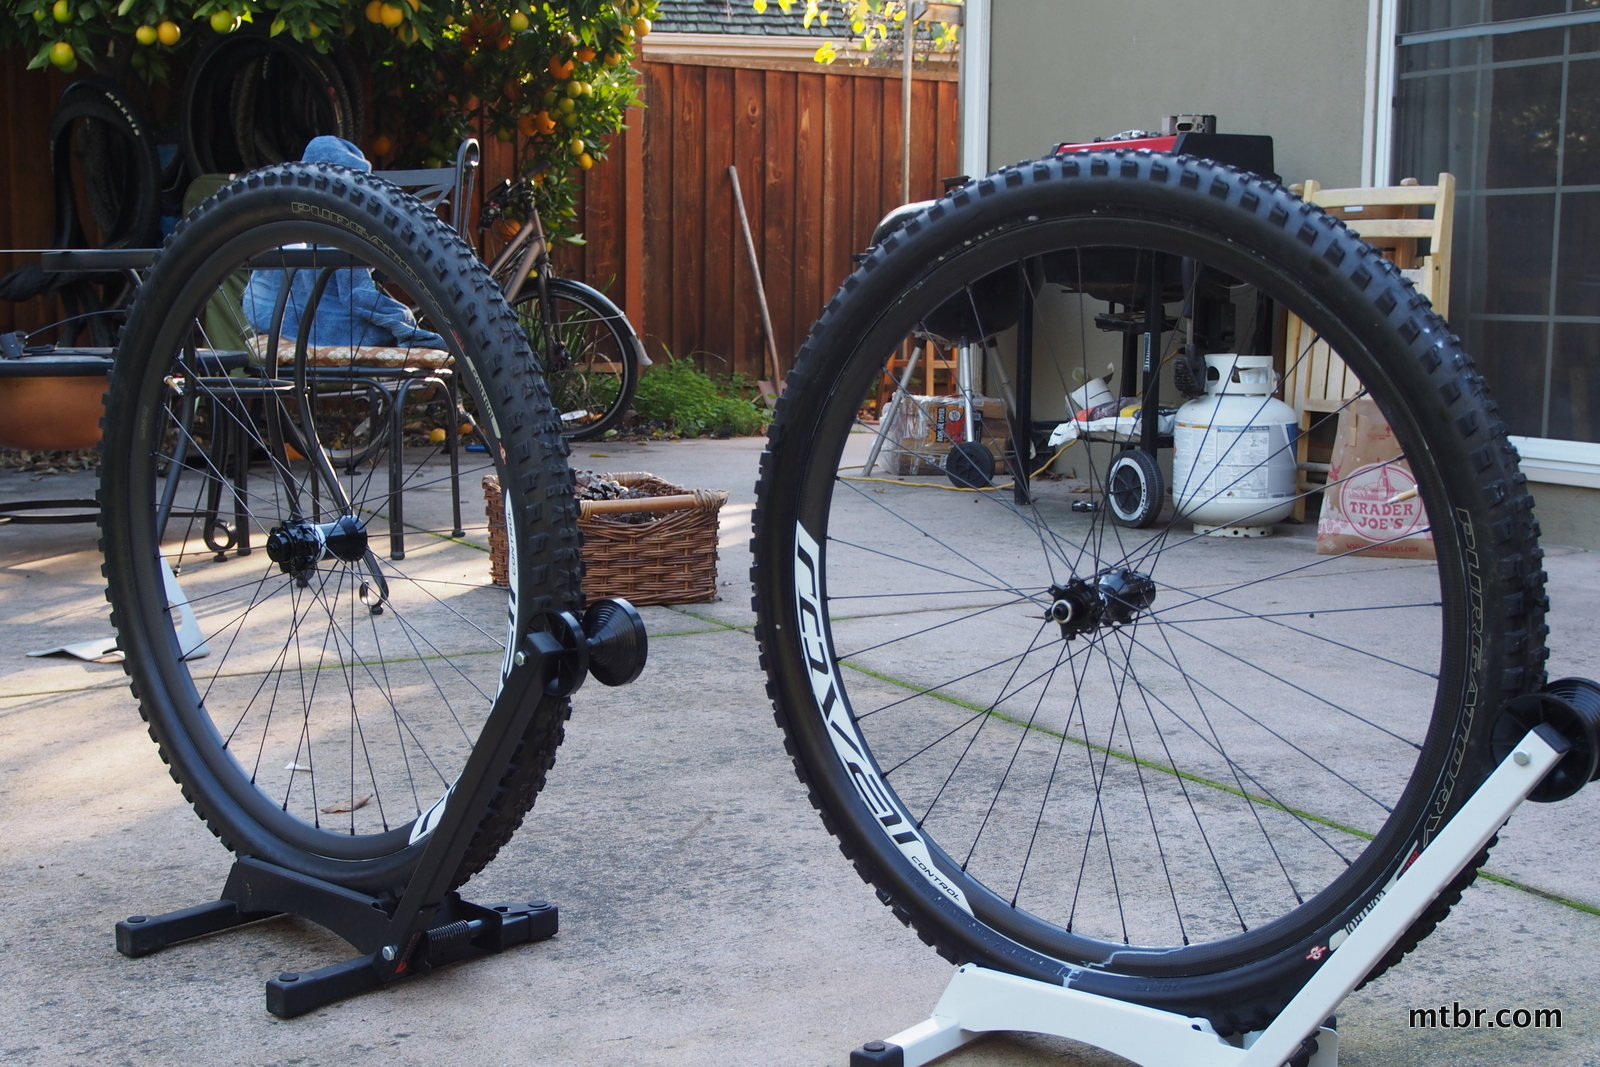 2013 Specialized Roval Control 29 Carbon Wheels for $1200 - Mtbr.com